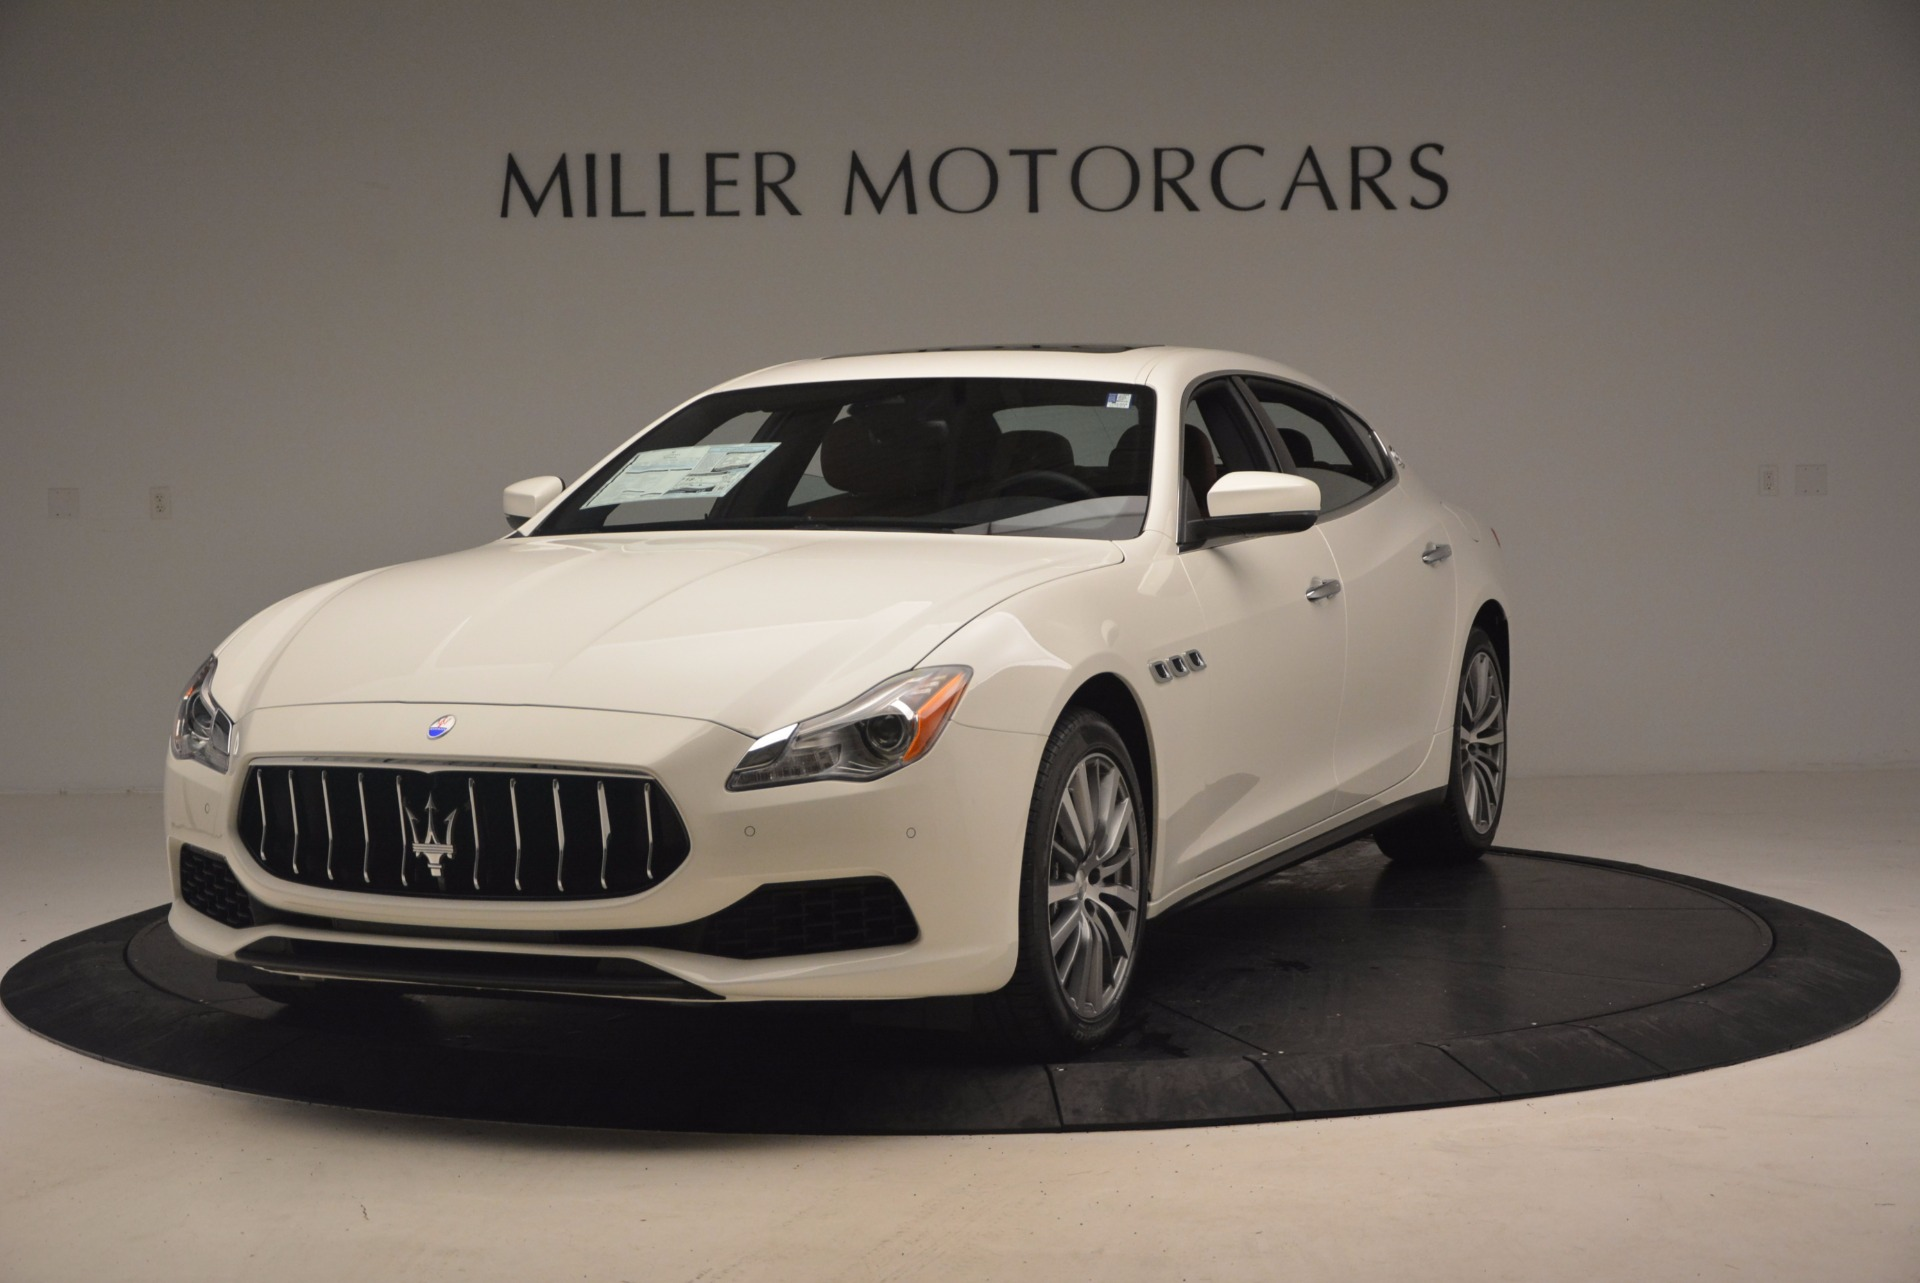 Used 2017 Maserati Quattroporte SQ4 for sale Sold at Bentley Greenwich in Greenwich CT 06830 1